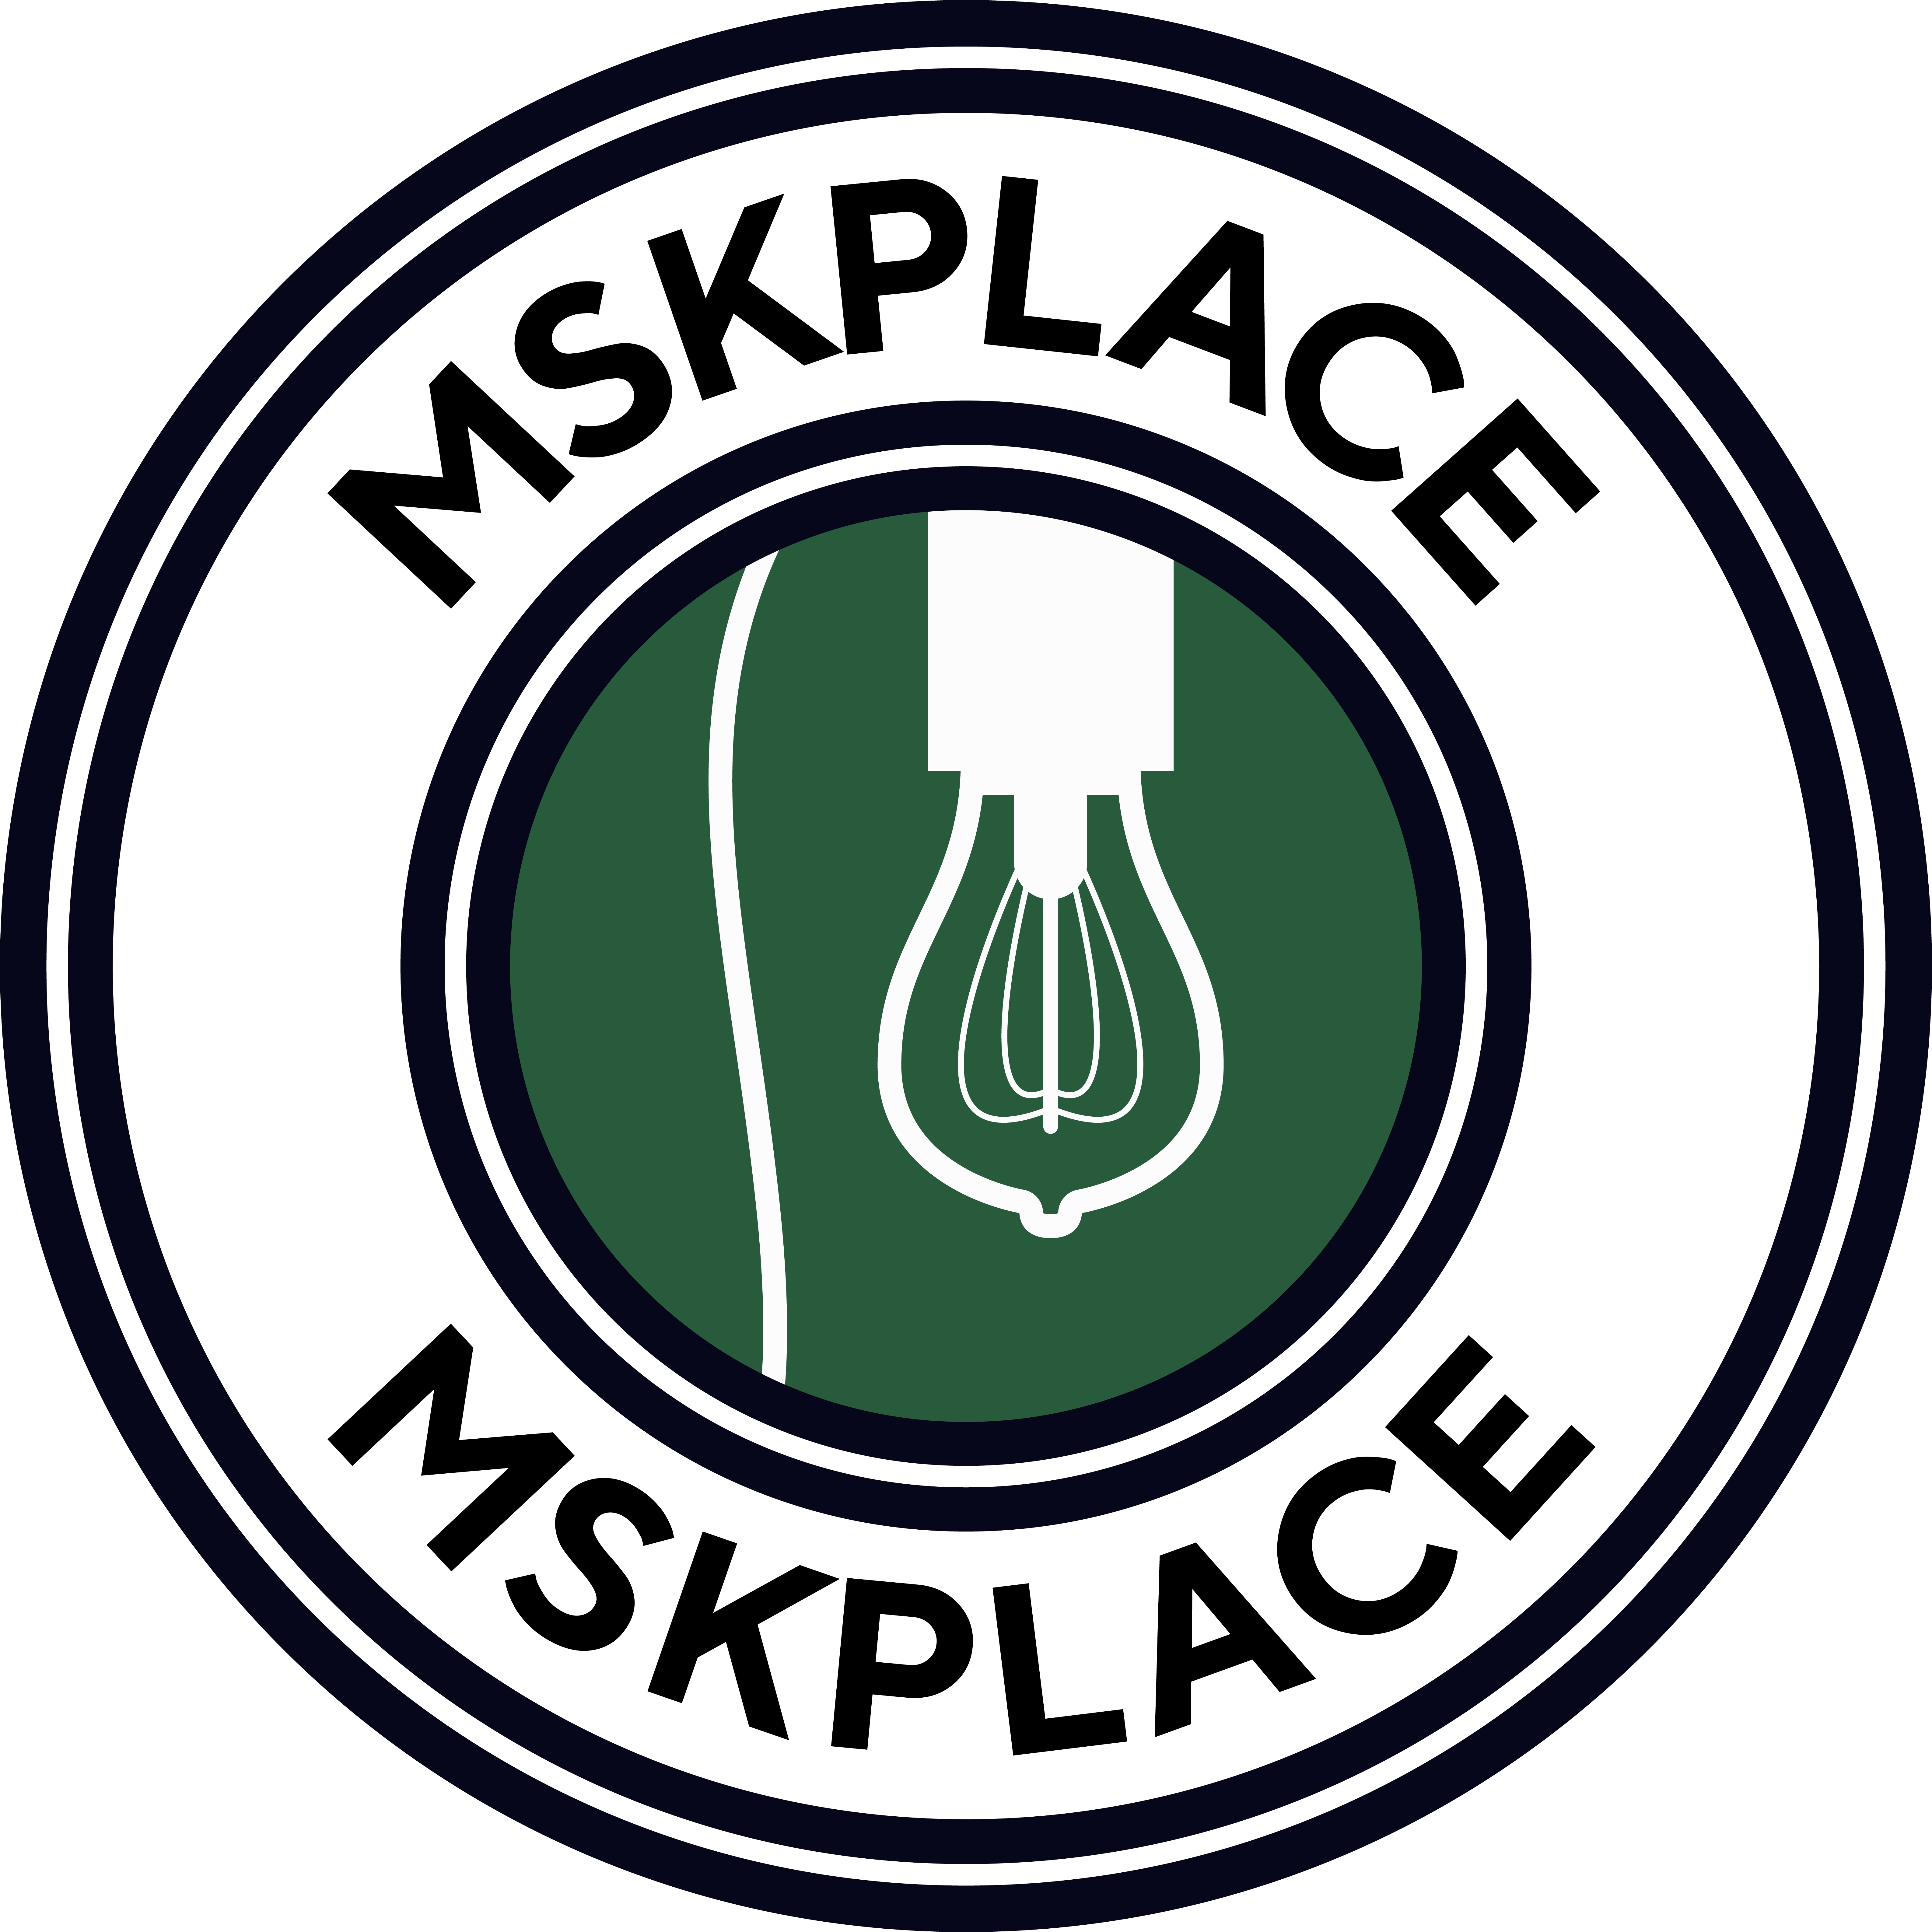 MSK PLACE